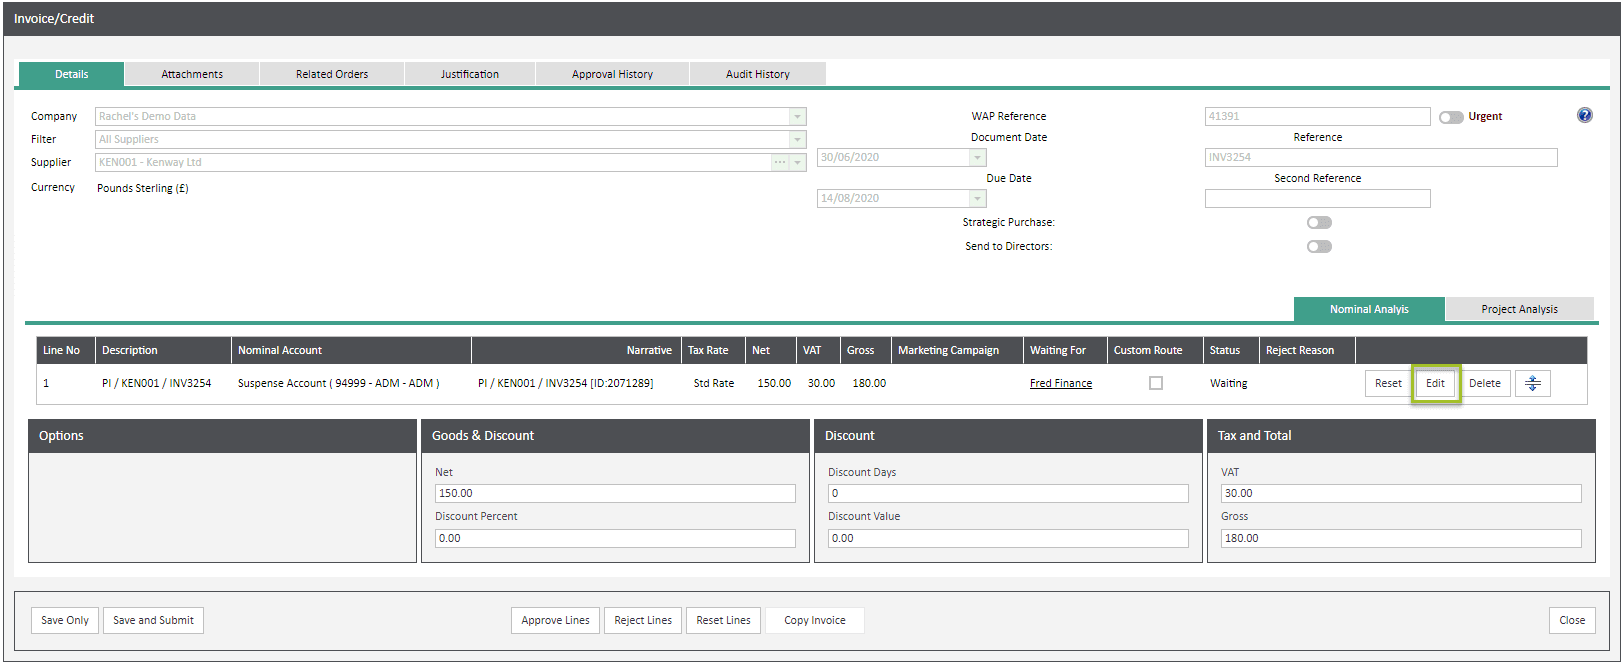 Sicon WAP Invoice Help and User Guide - Invoice HUG Section 6 Image 3